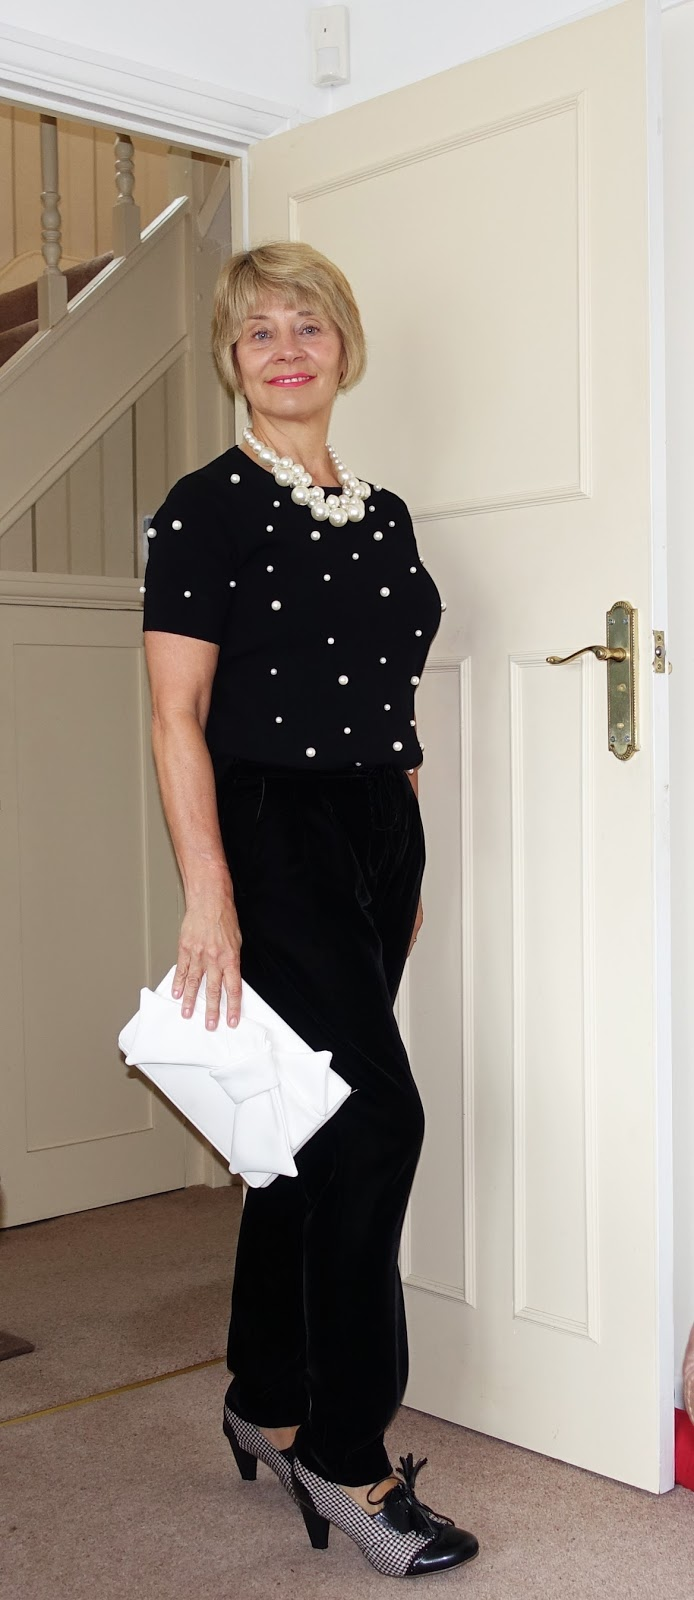 Is This Mutton features a glamorous evening look for women over 40 with velvet trousers and a pearl embellished top